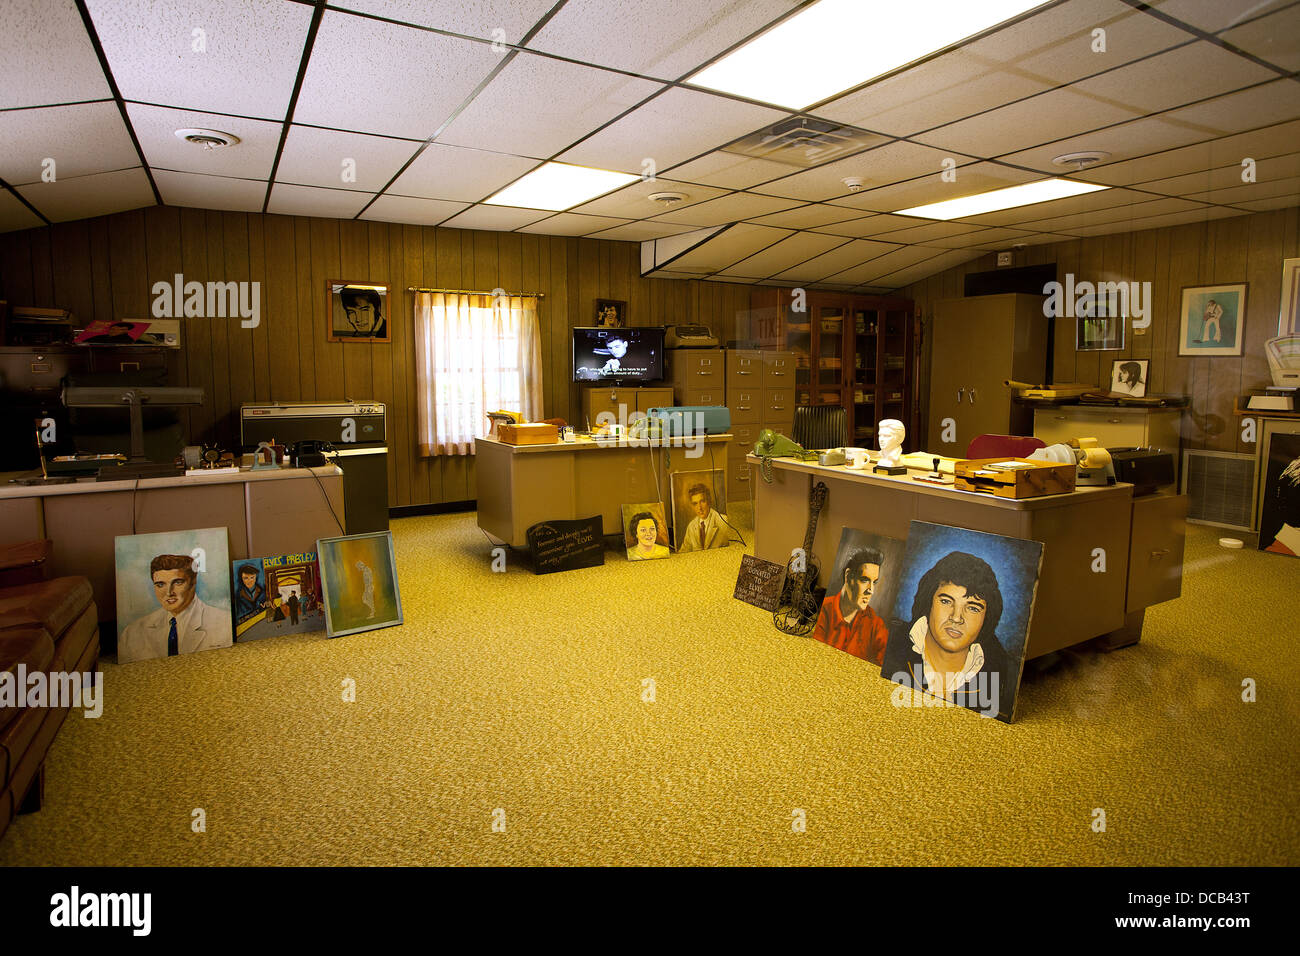 Vernon Presley's office at Graceland the home of Elvis ...